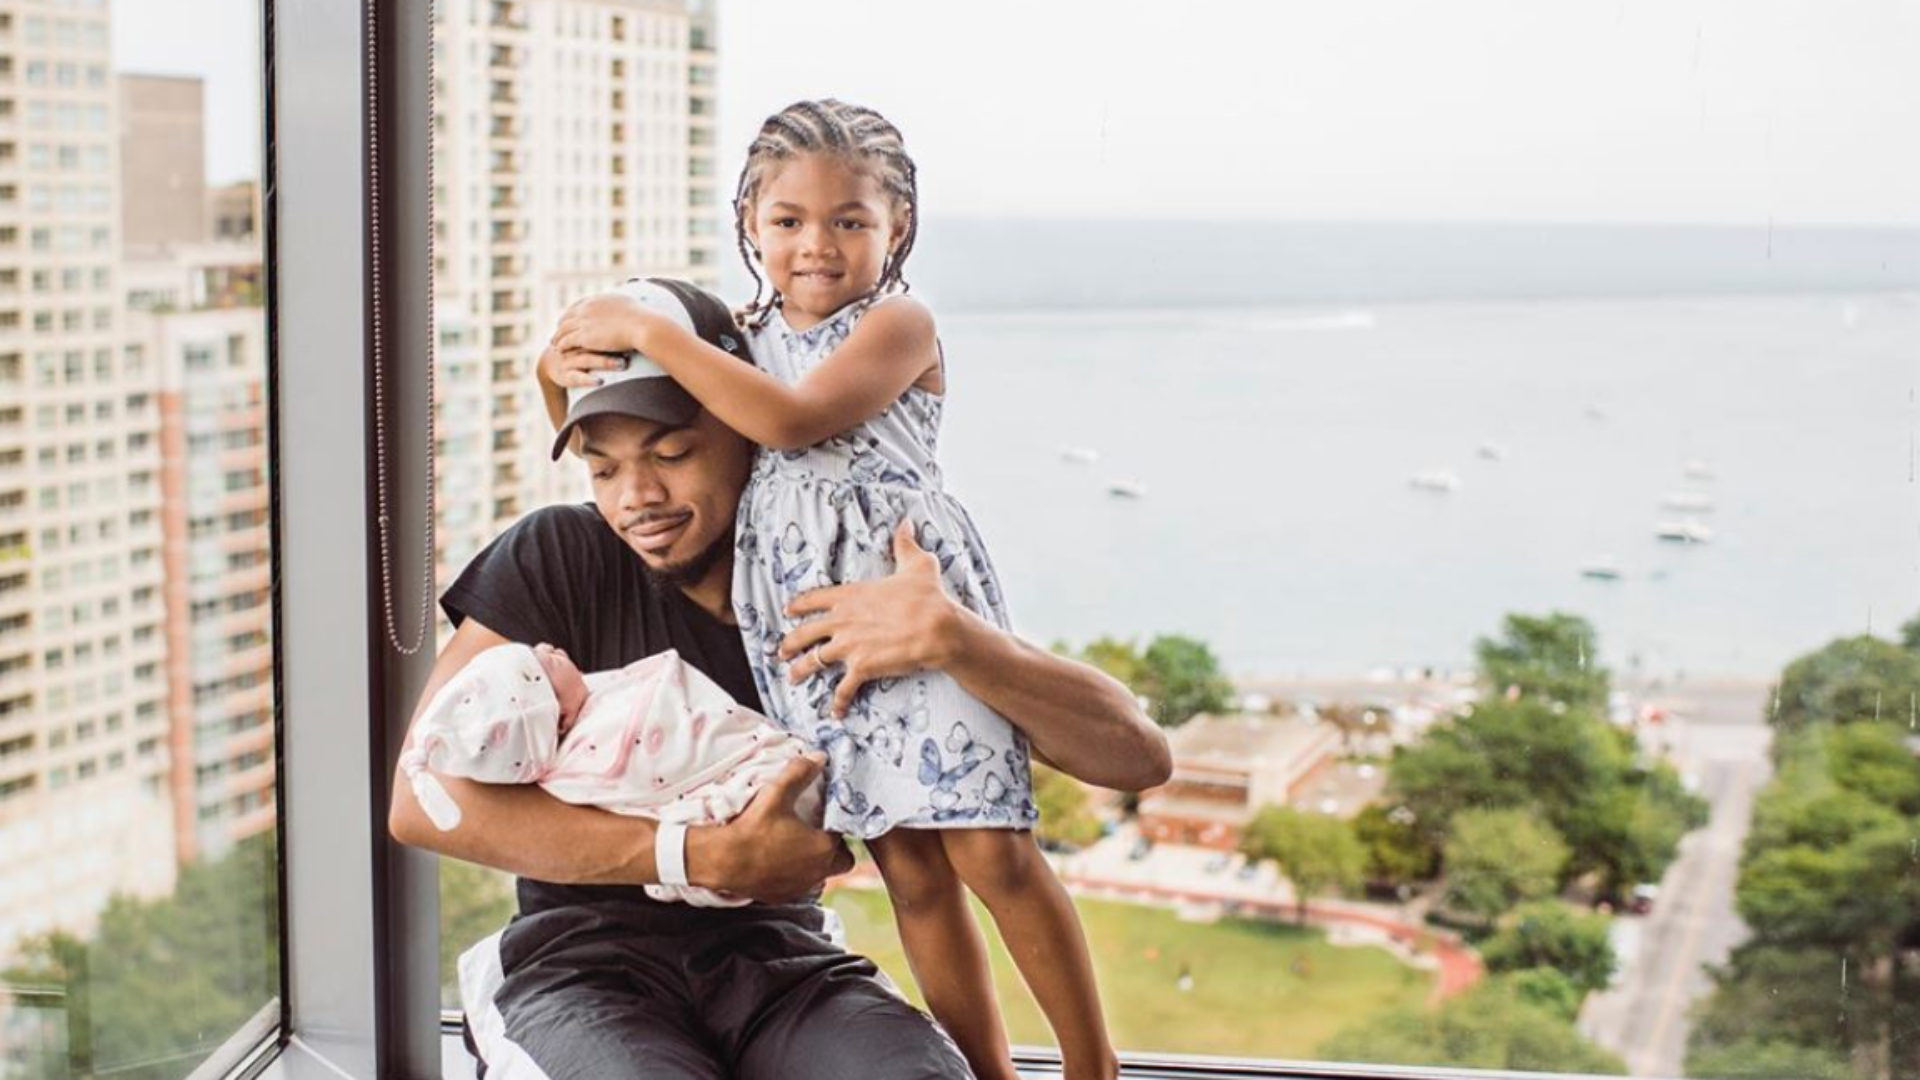 Chance The Rapper Reschedules Tour To Spend Time With His Growing Family